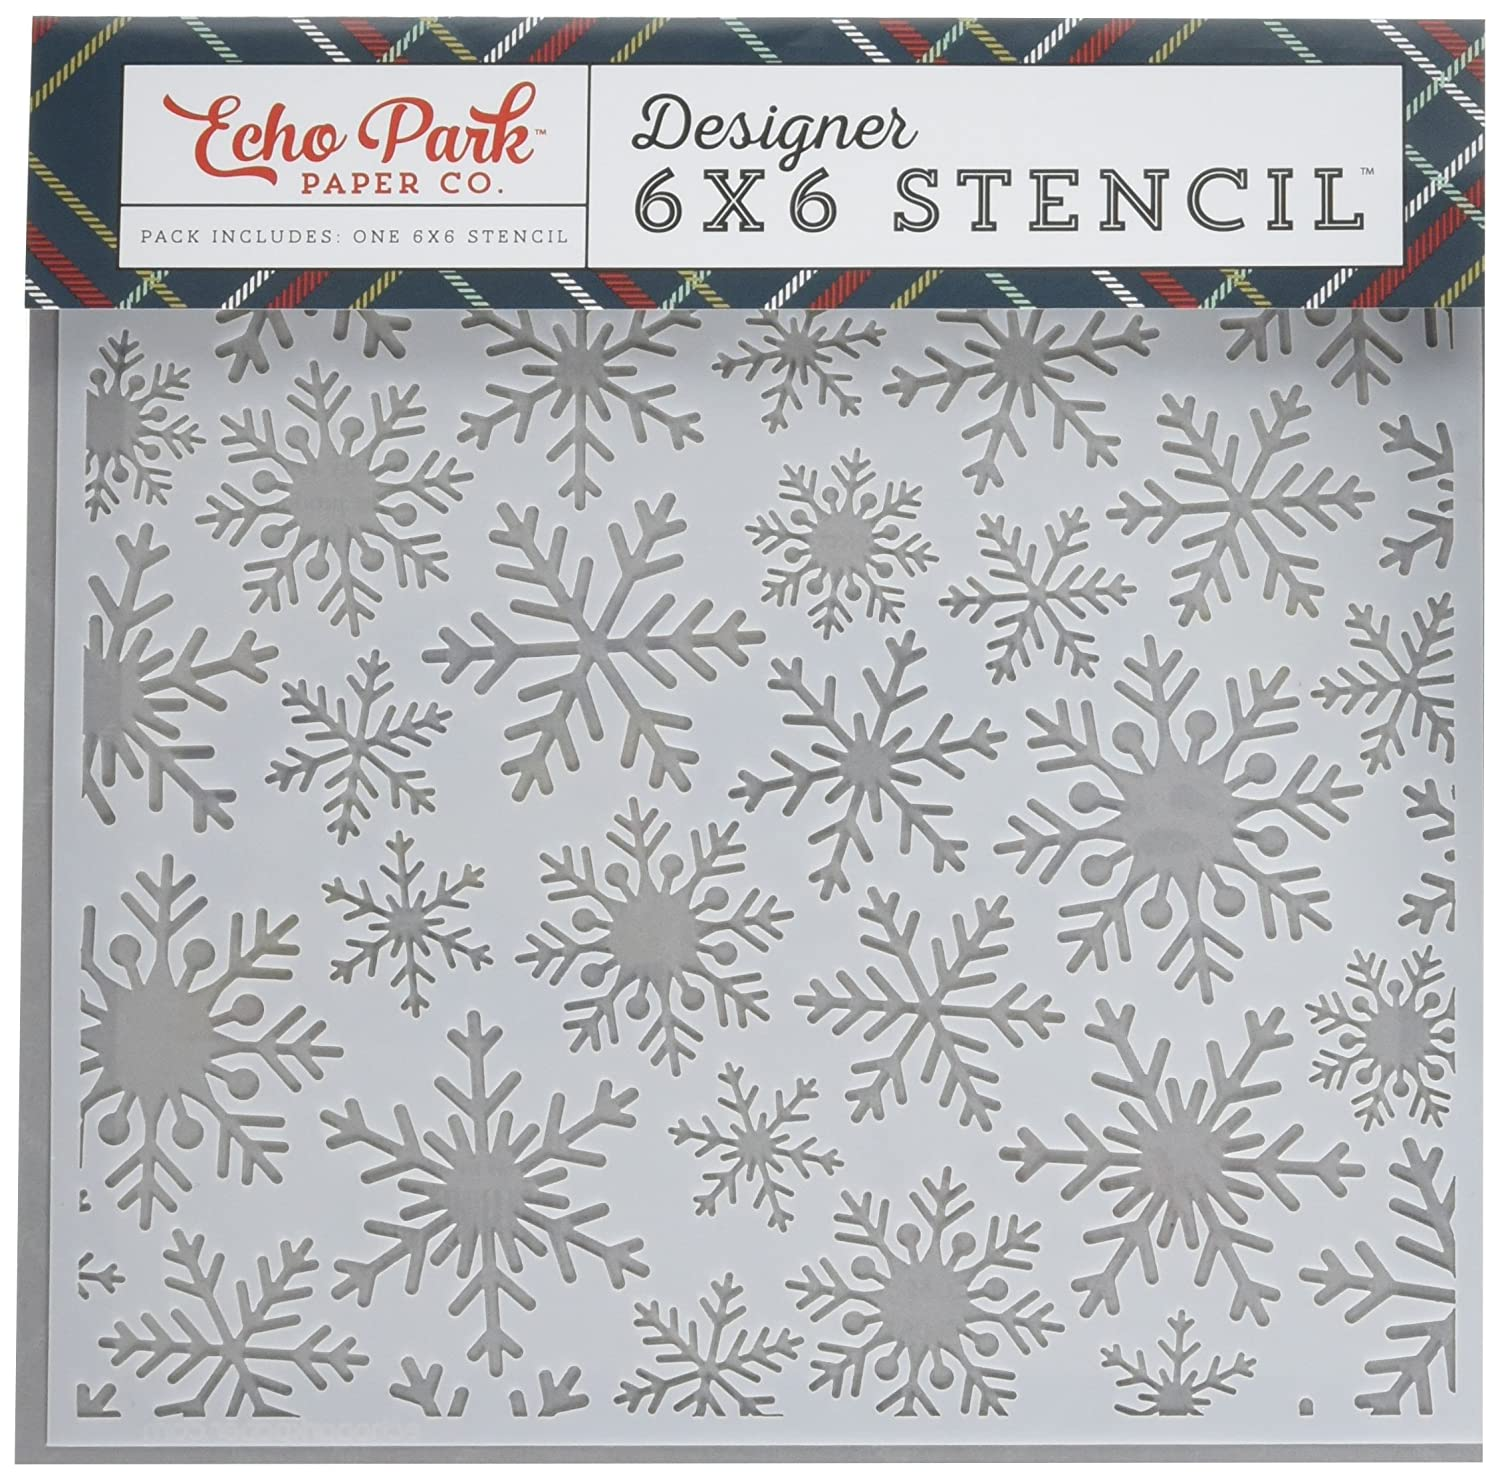 Echo Park Paper Company DH116036 Frosted Snowflake Stencil